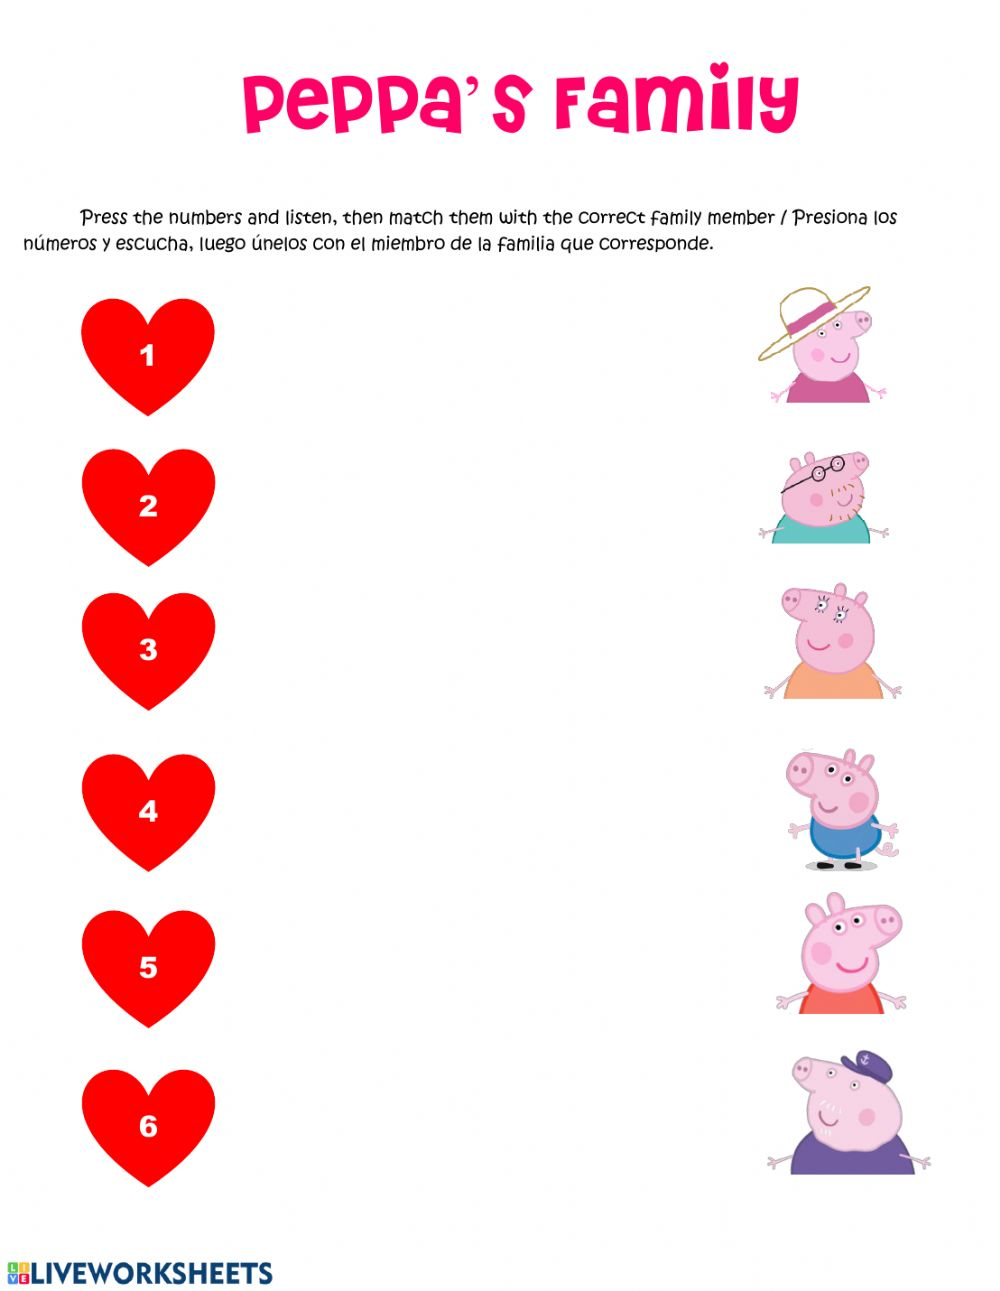 Peppa Pig's Family - Interactive worksheet